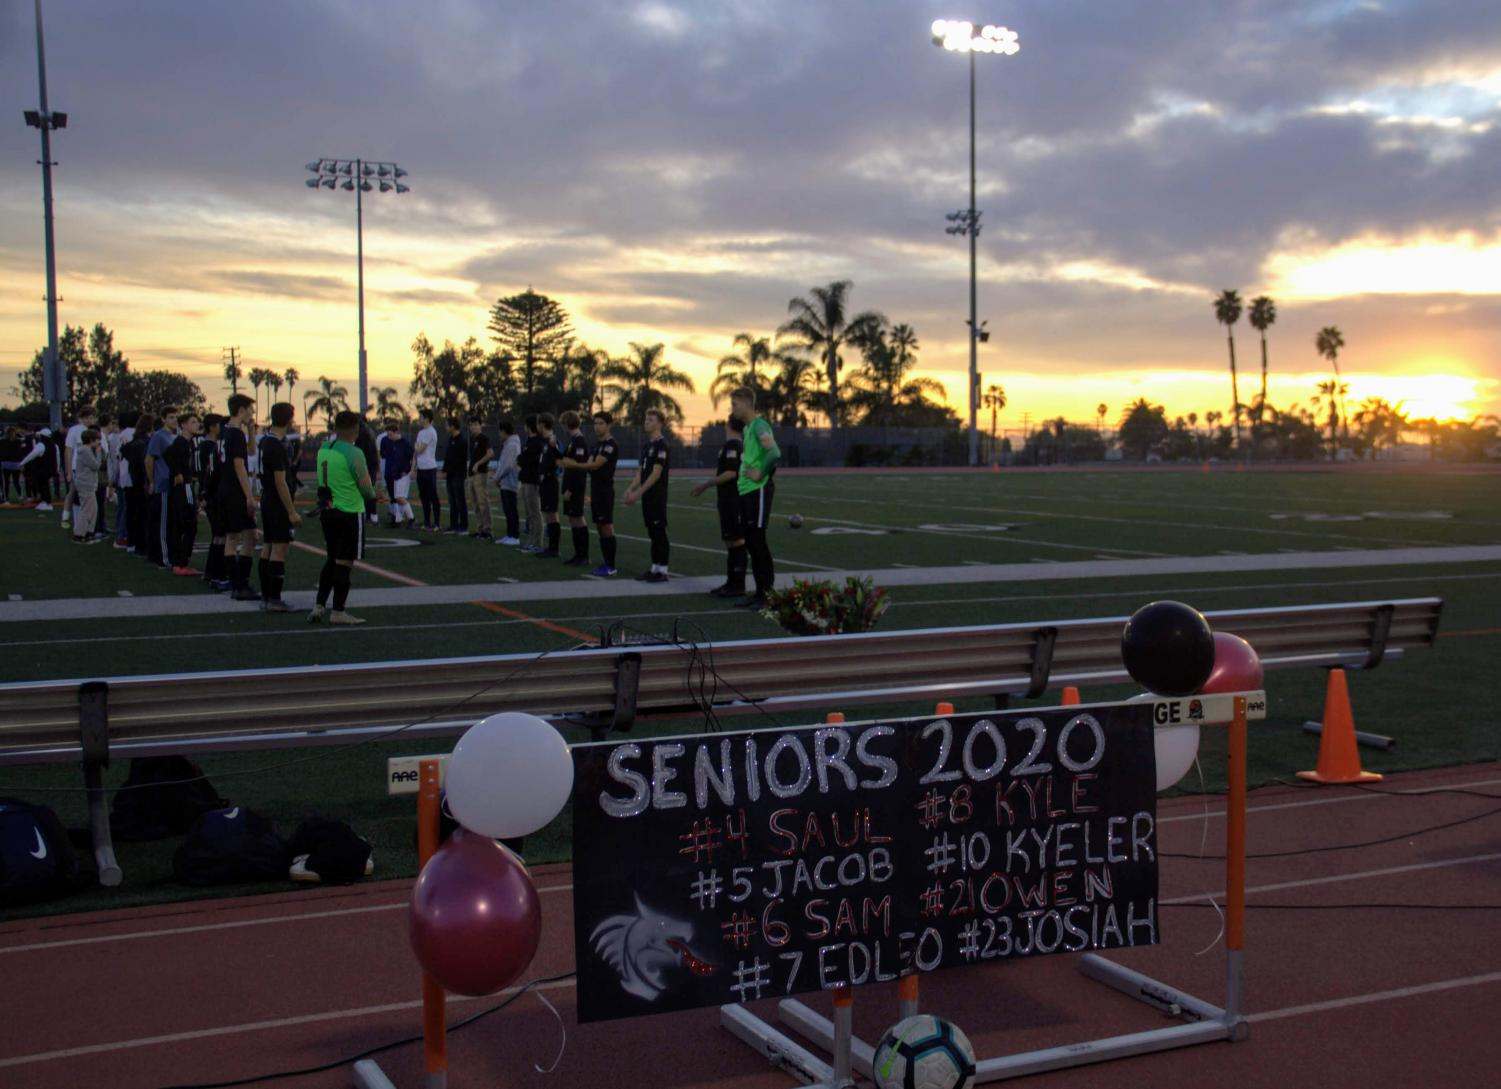 The Foothill boy's soccer team lines up to celebrate their seniors.